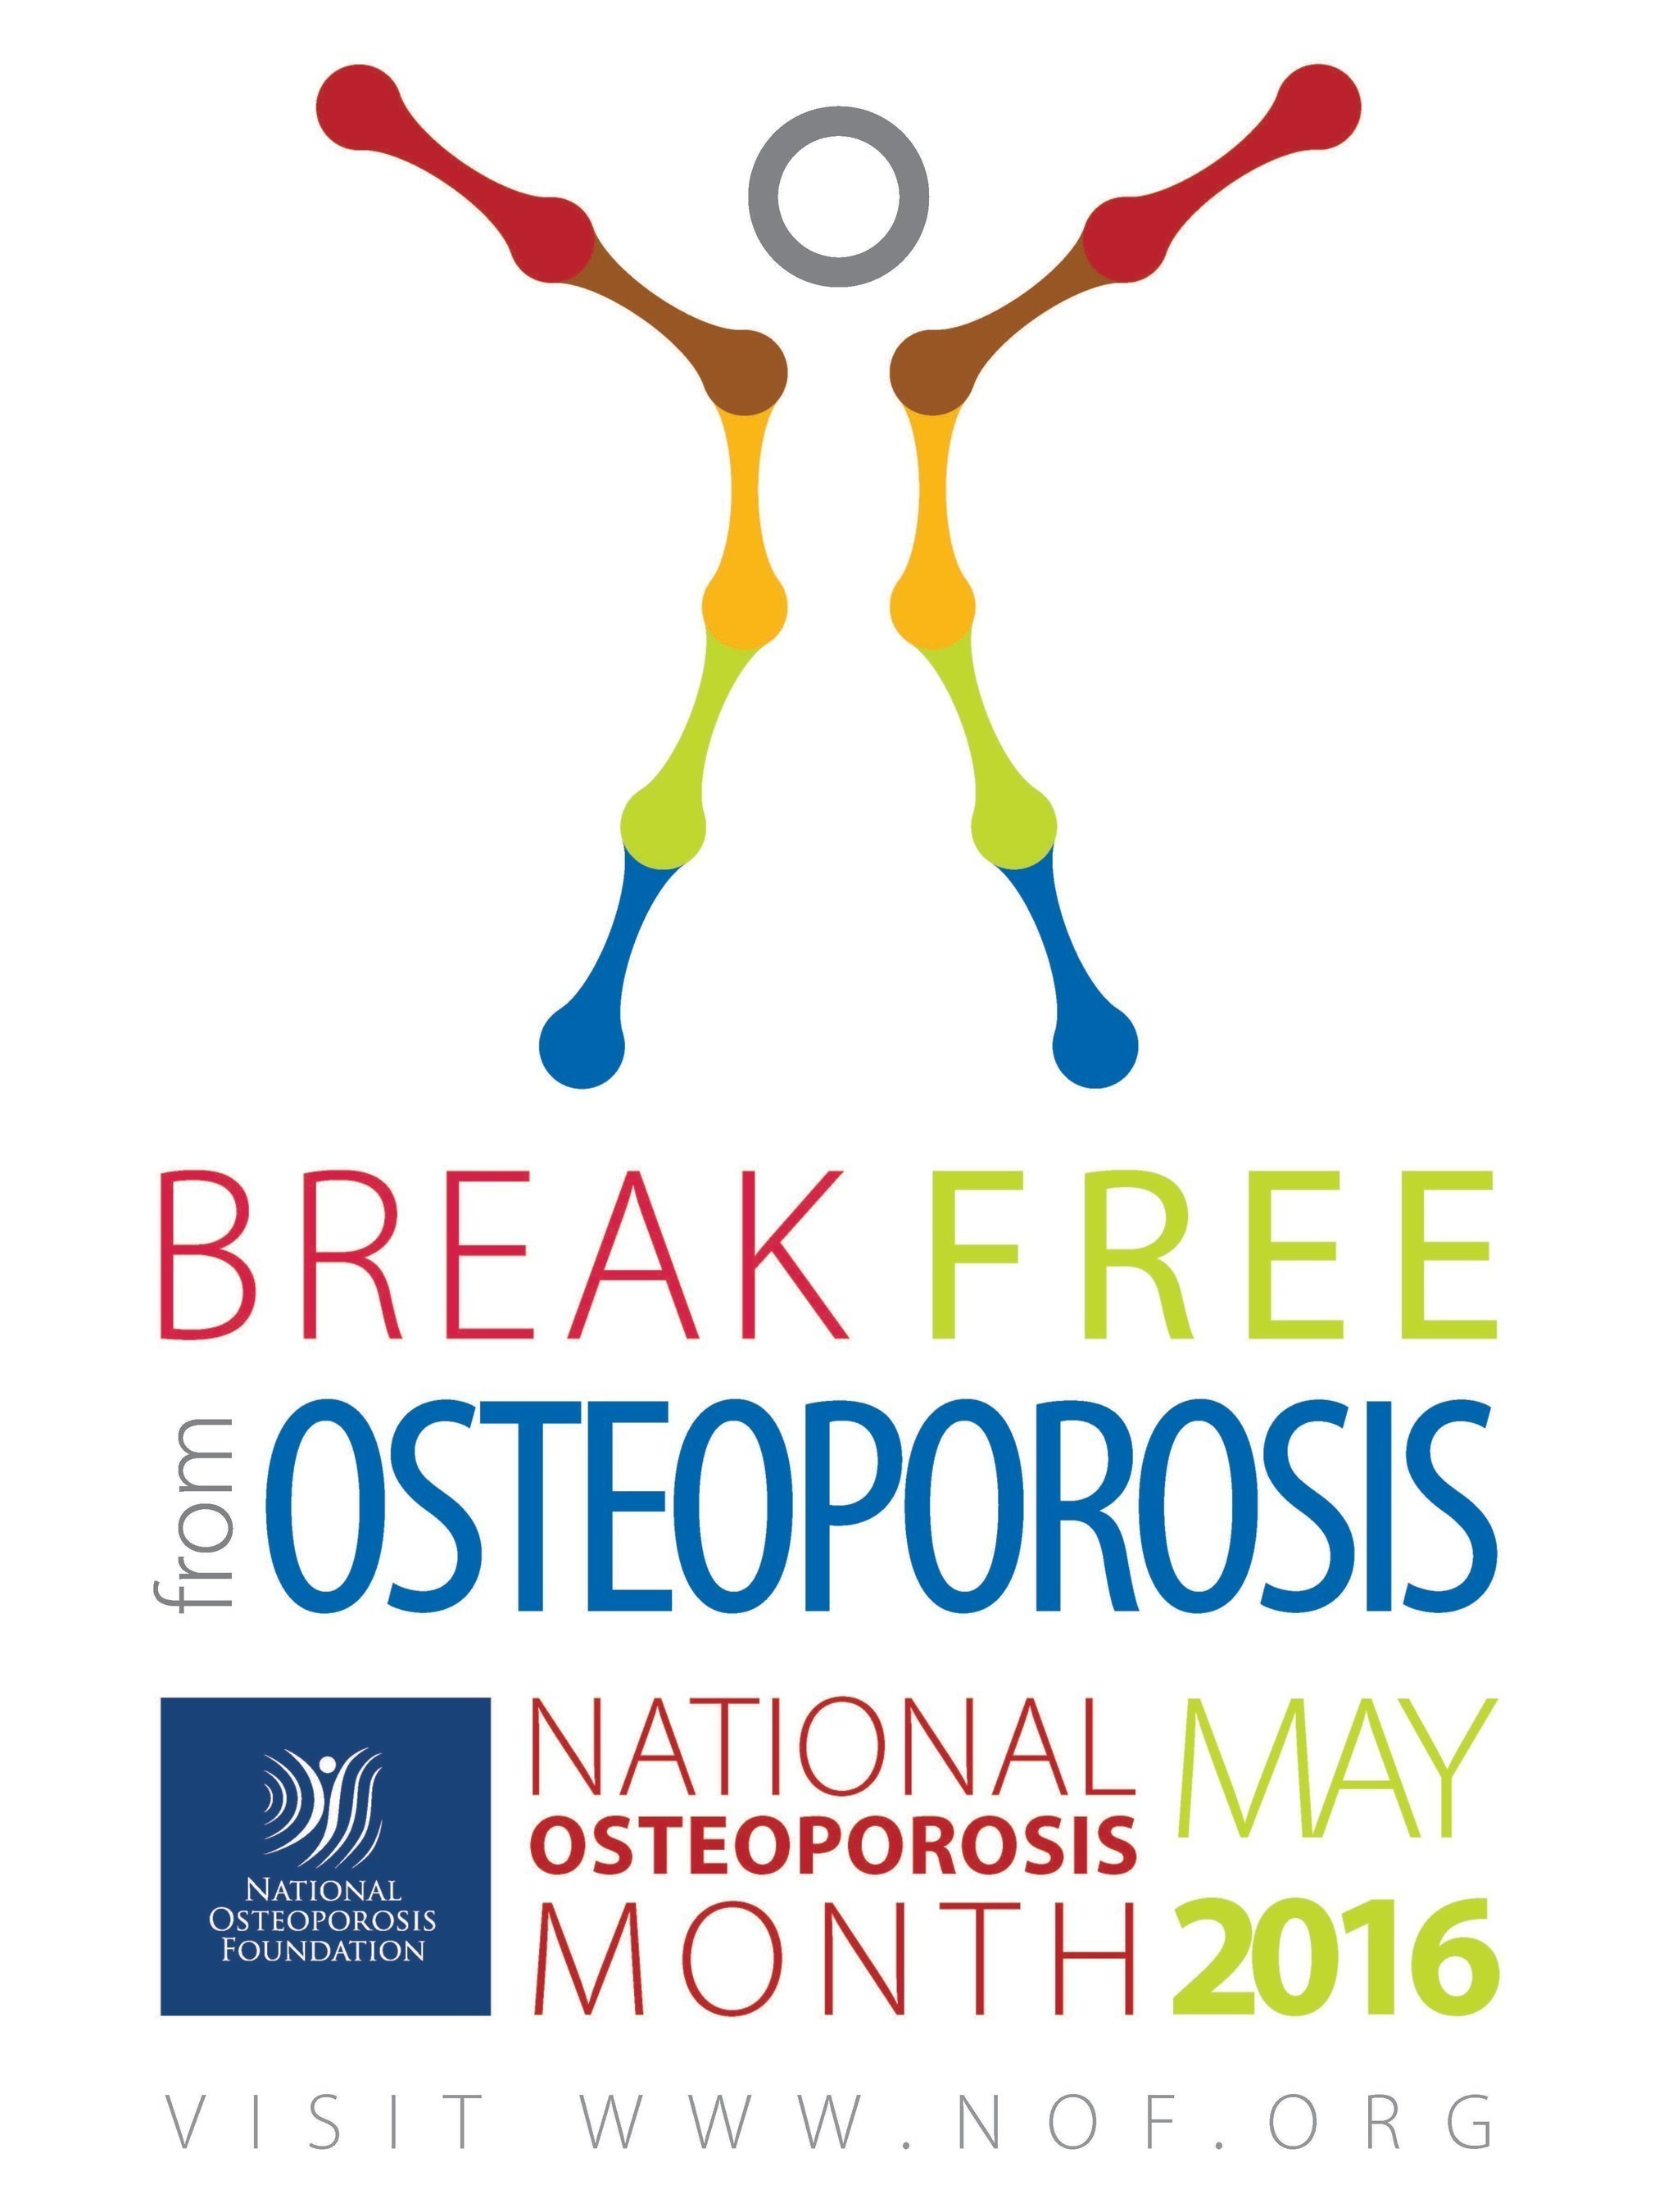 NOF encourages everyone to Break Free from Osteoporosis by getting to know their risk factors and making lifestyle changes to build strong bones for life.